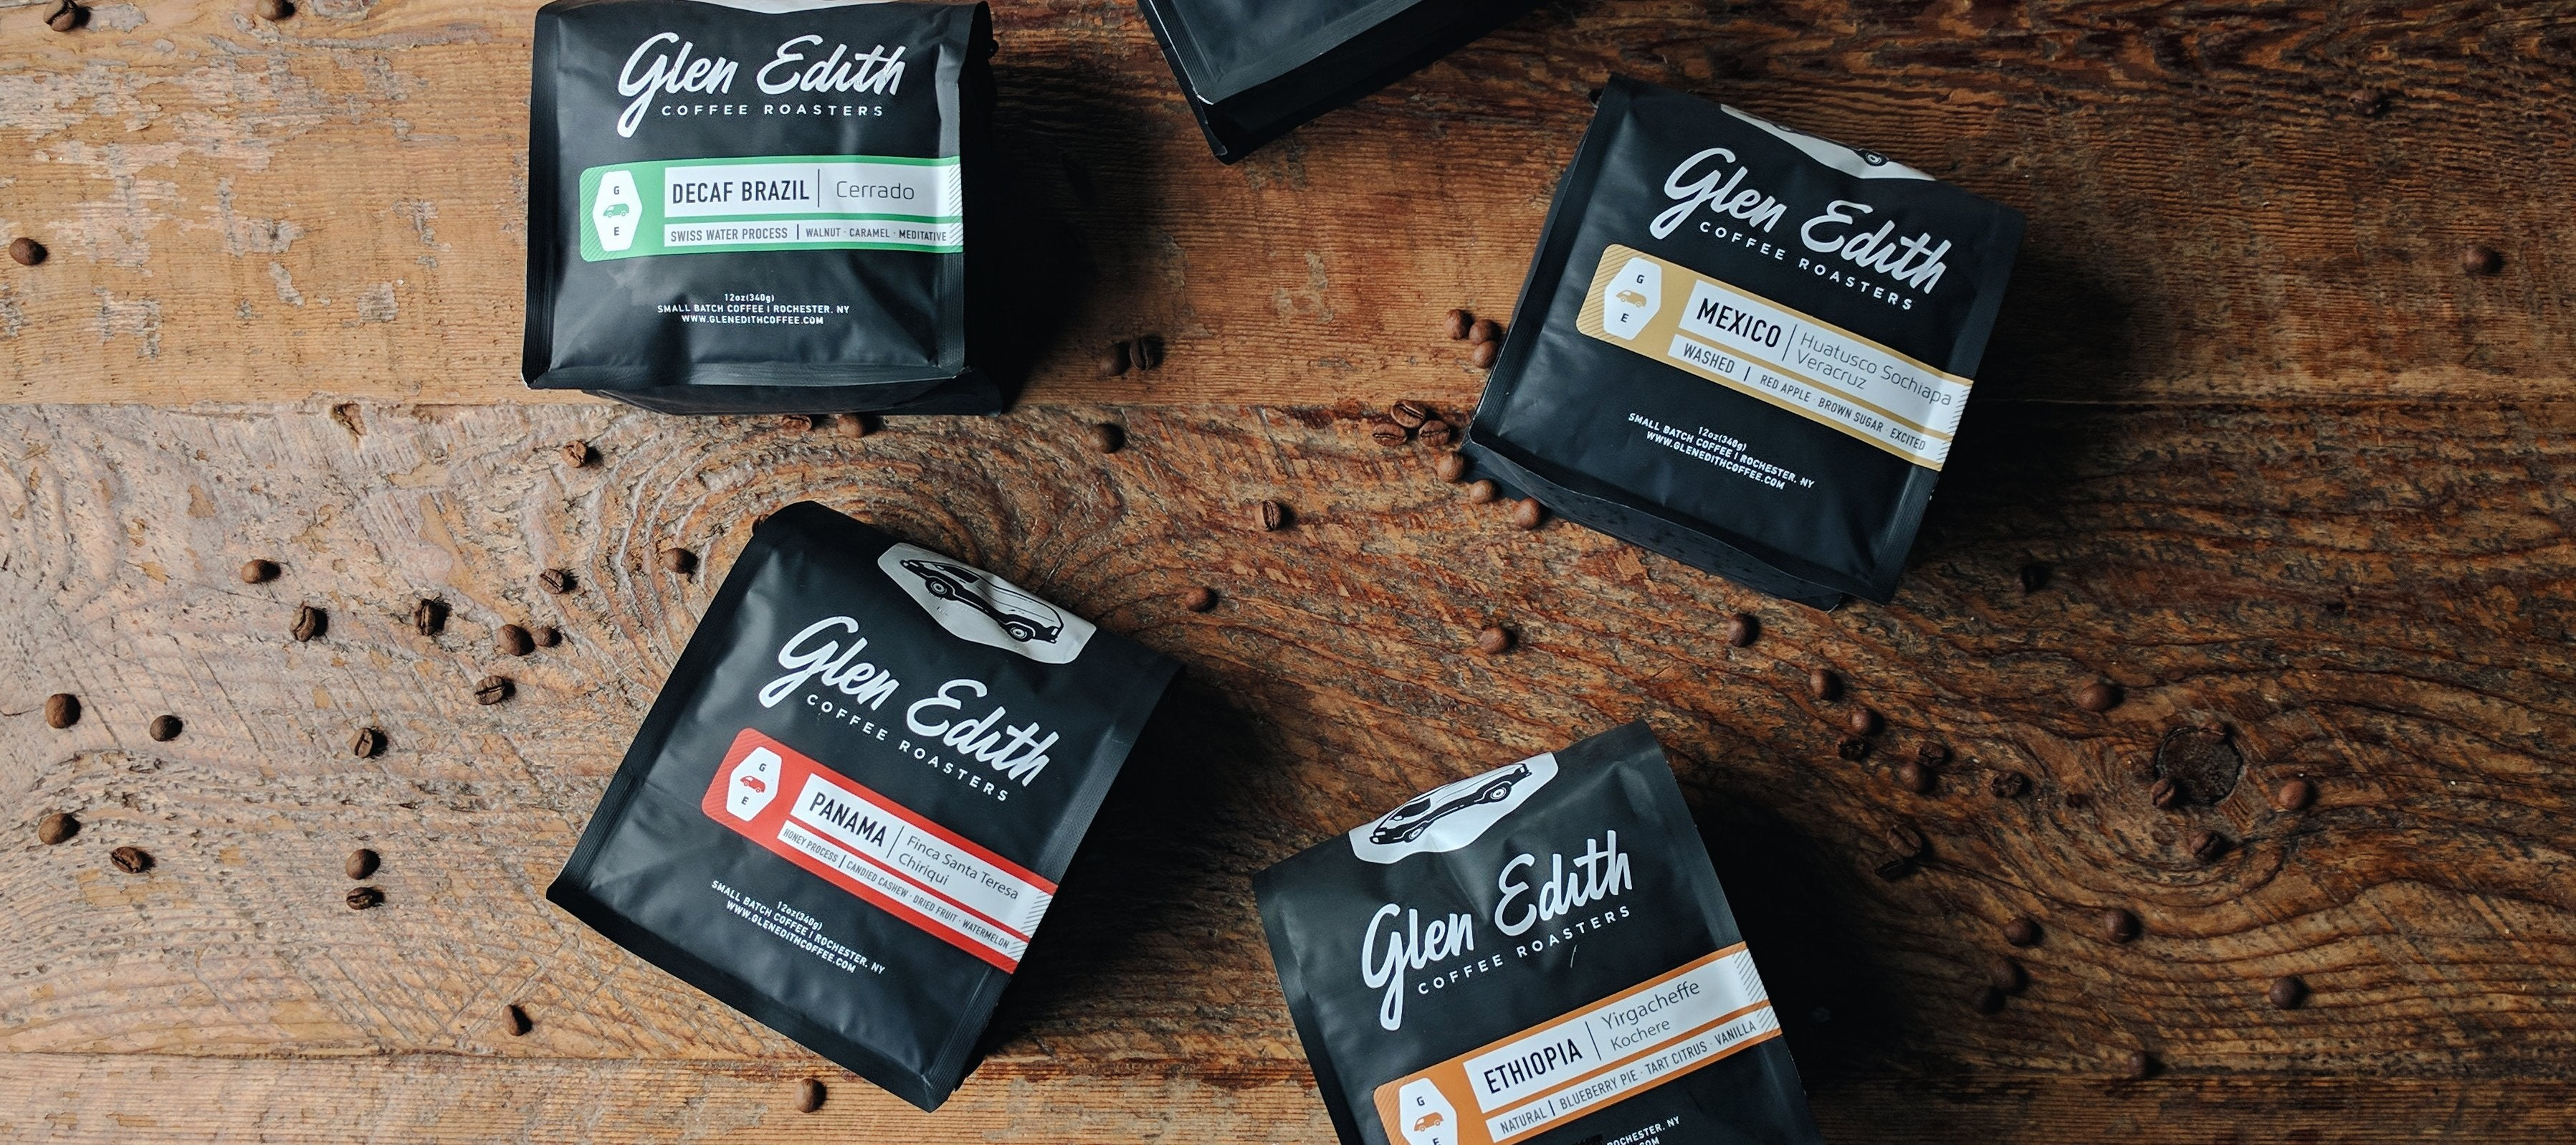 Glen Edith Coffee Roasters - pour over coffee bar in